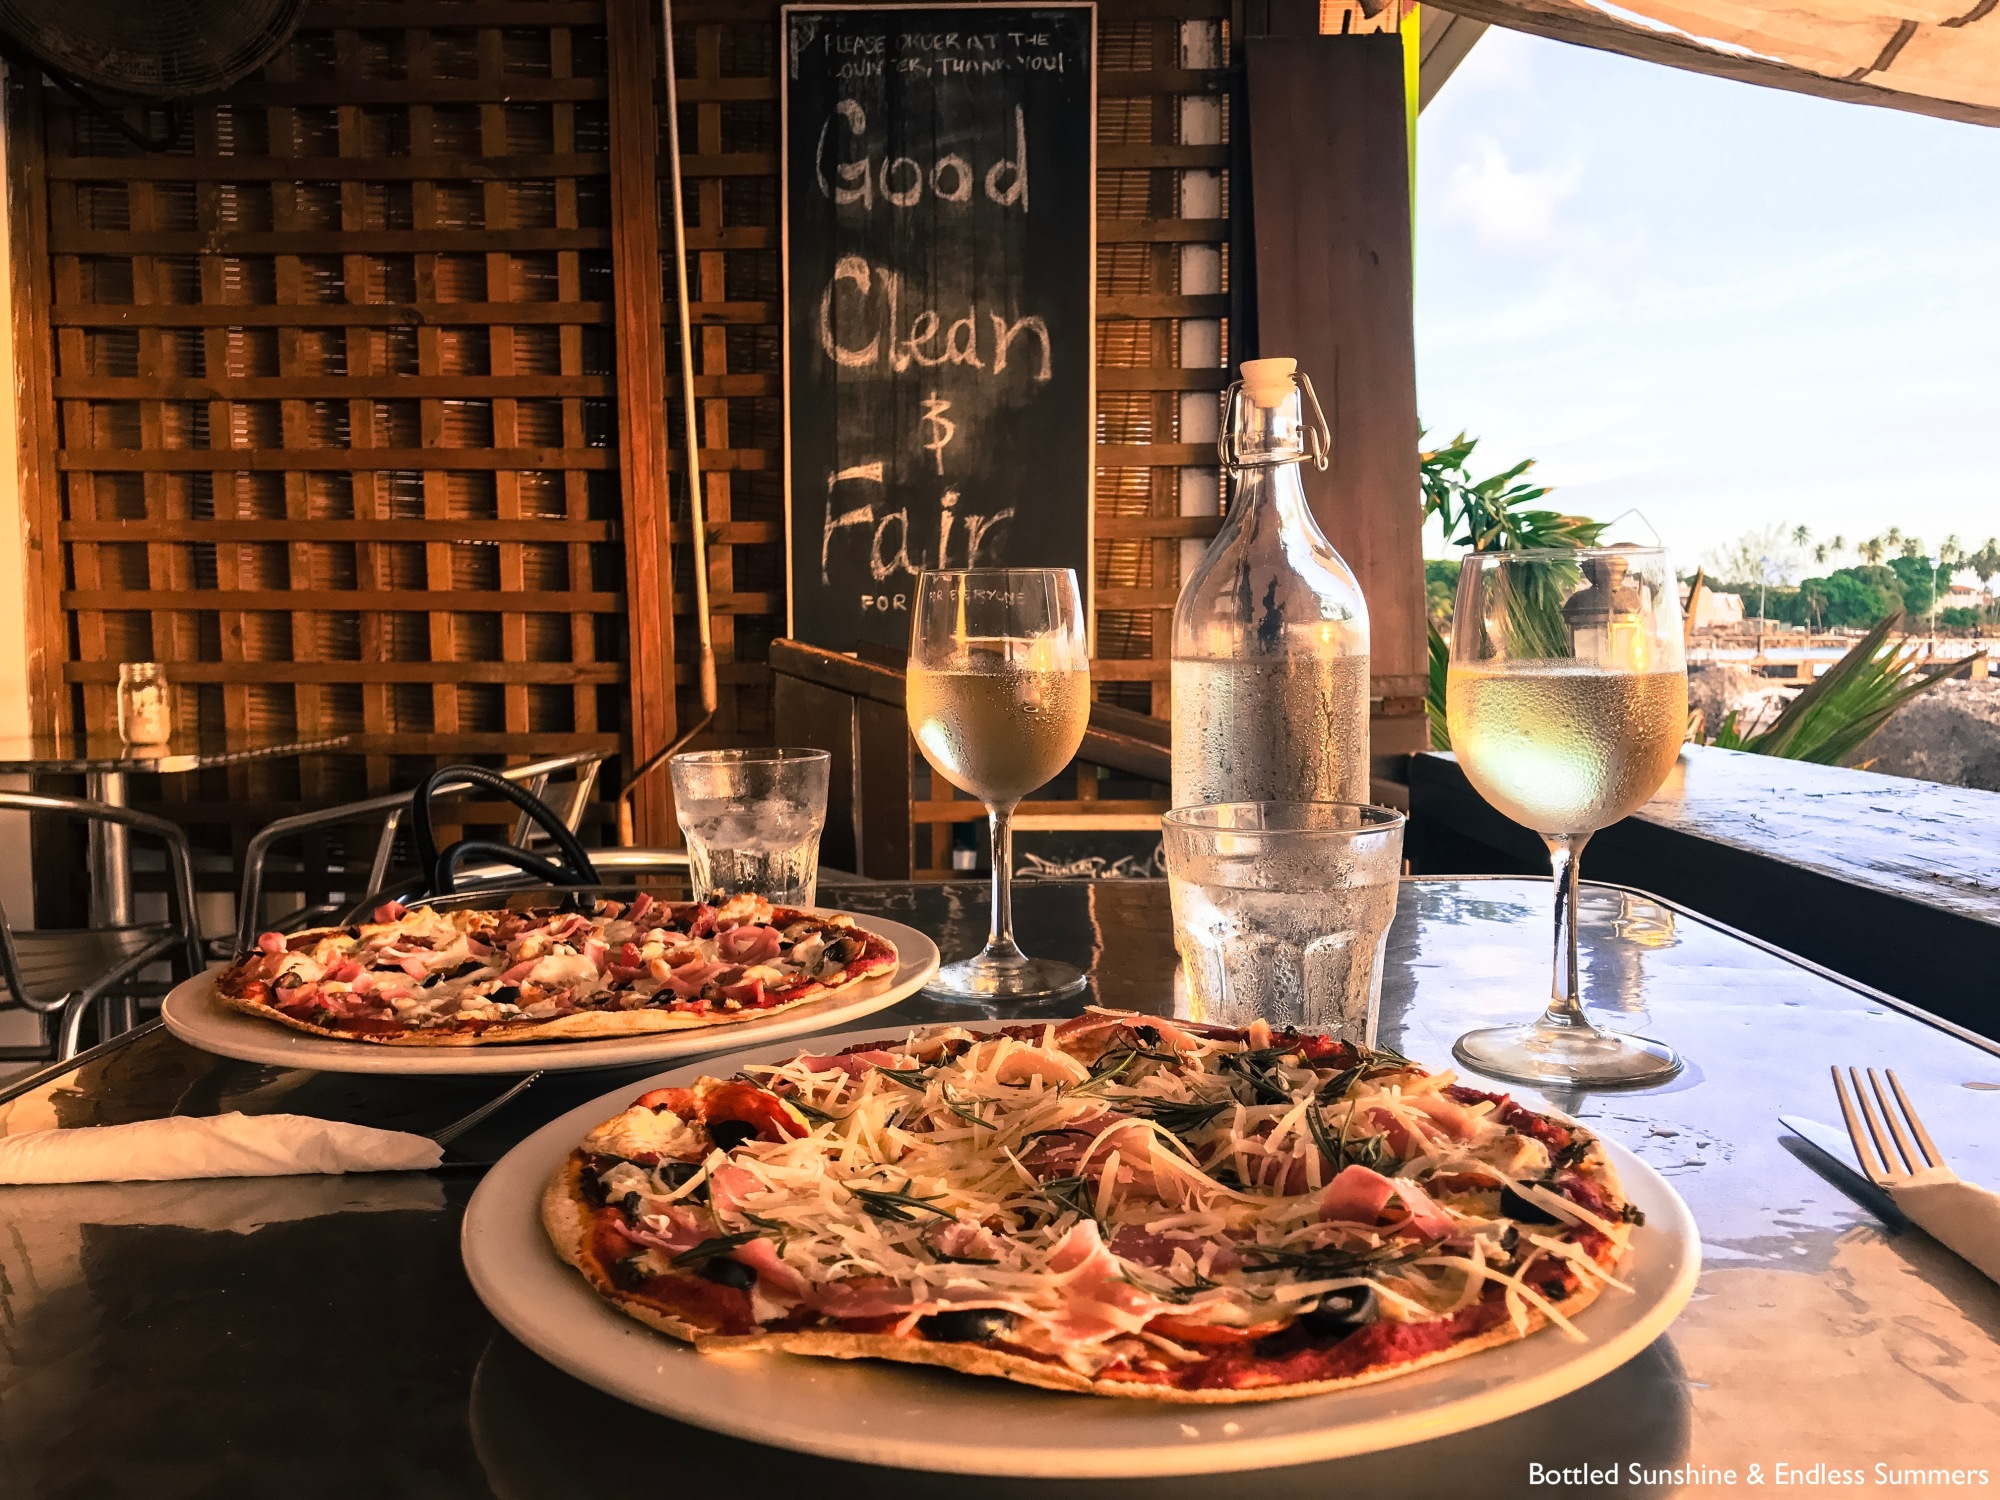 Pizza and Wine - The Orange Street Grocer, Barbados